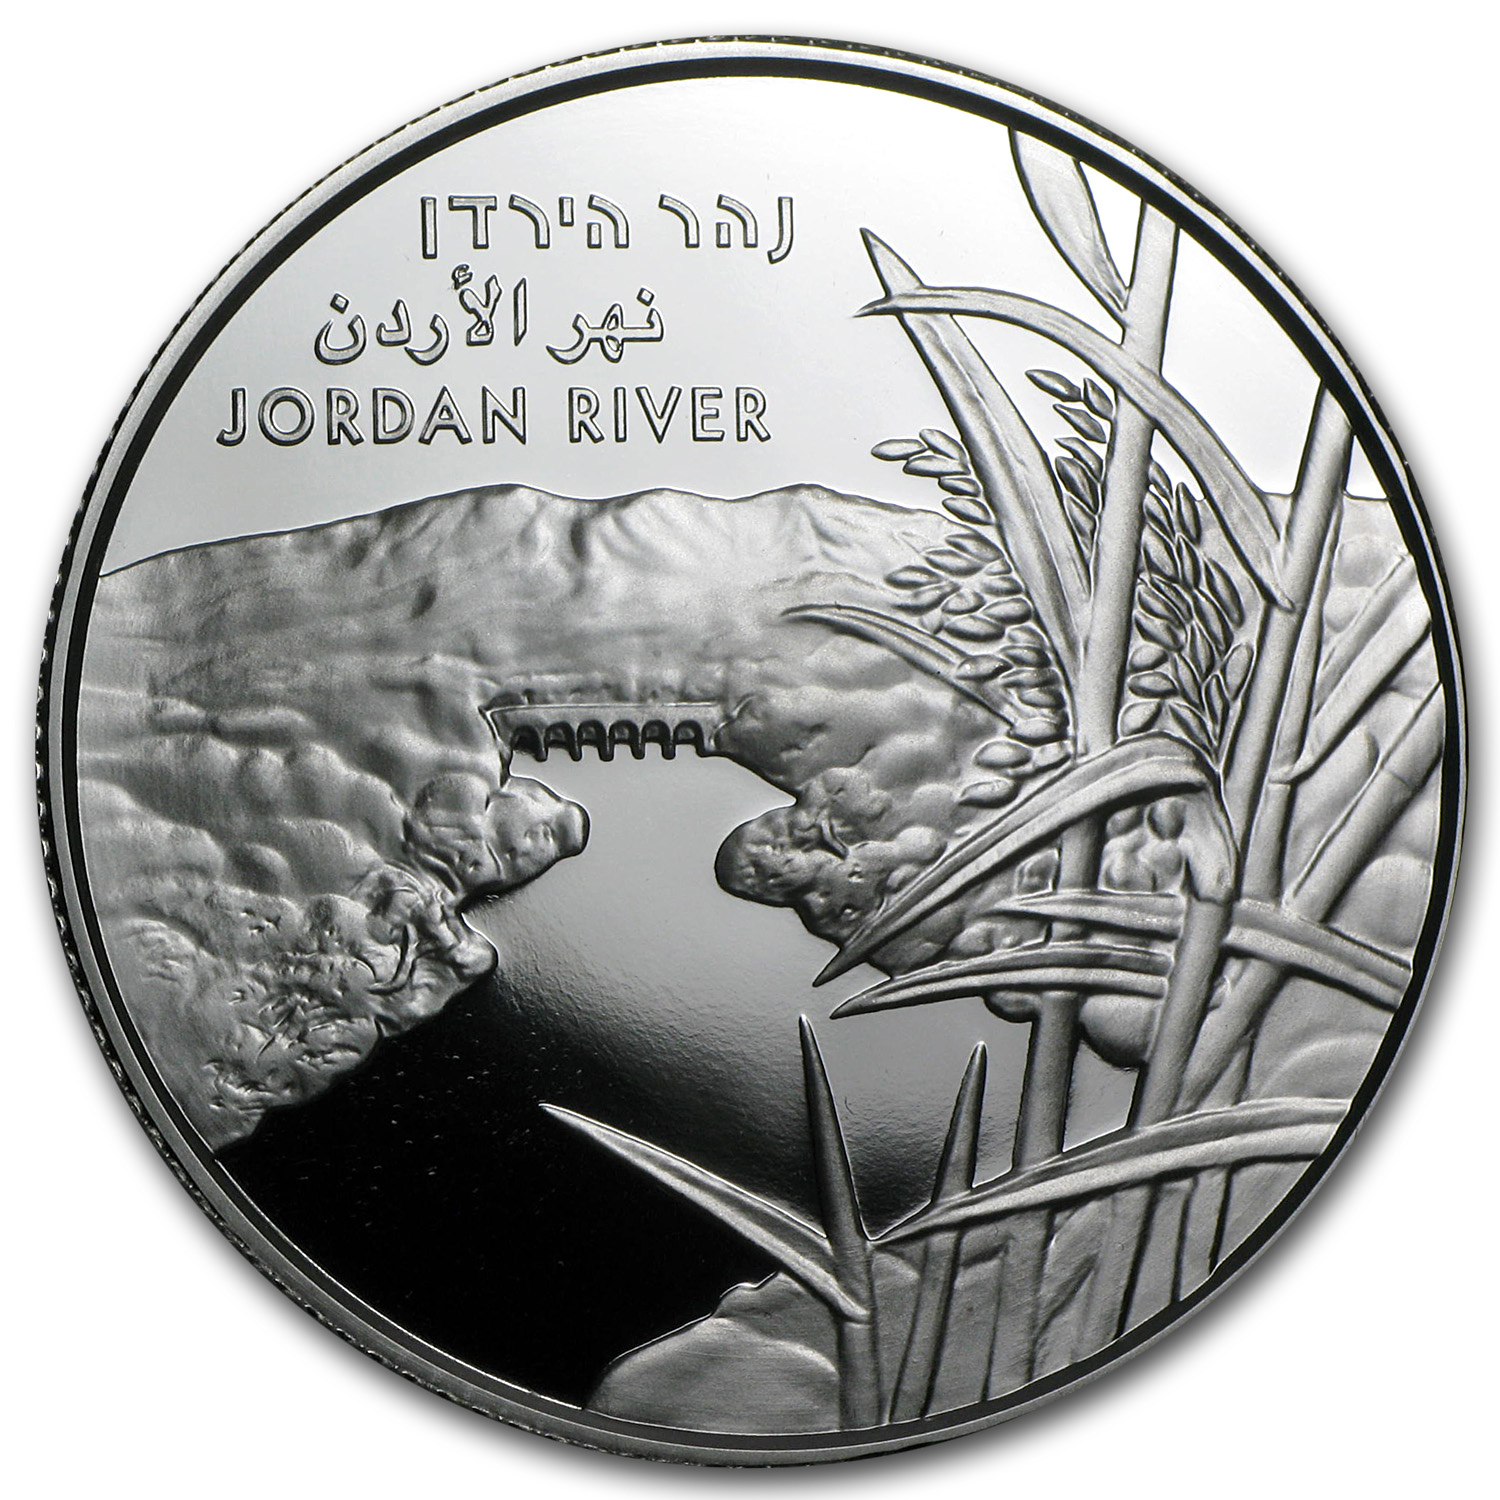 2013 Israel The Jordan River Silver 2 NIS Proof